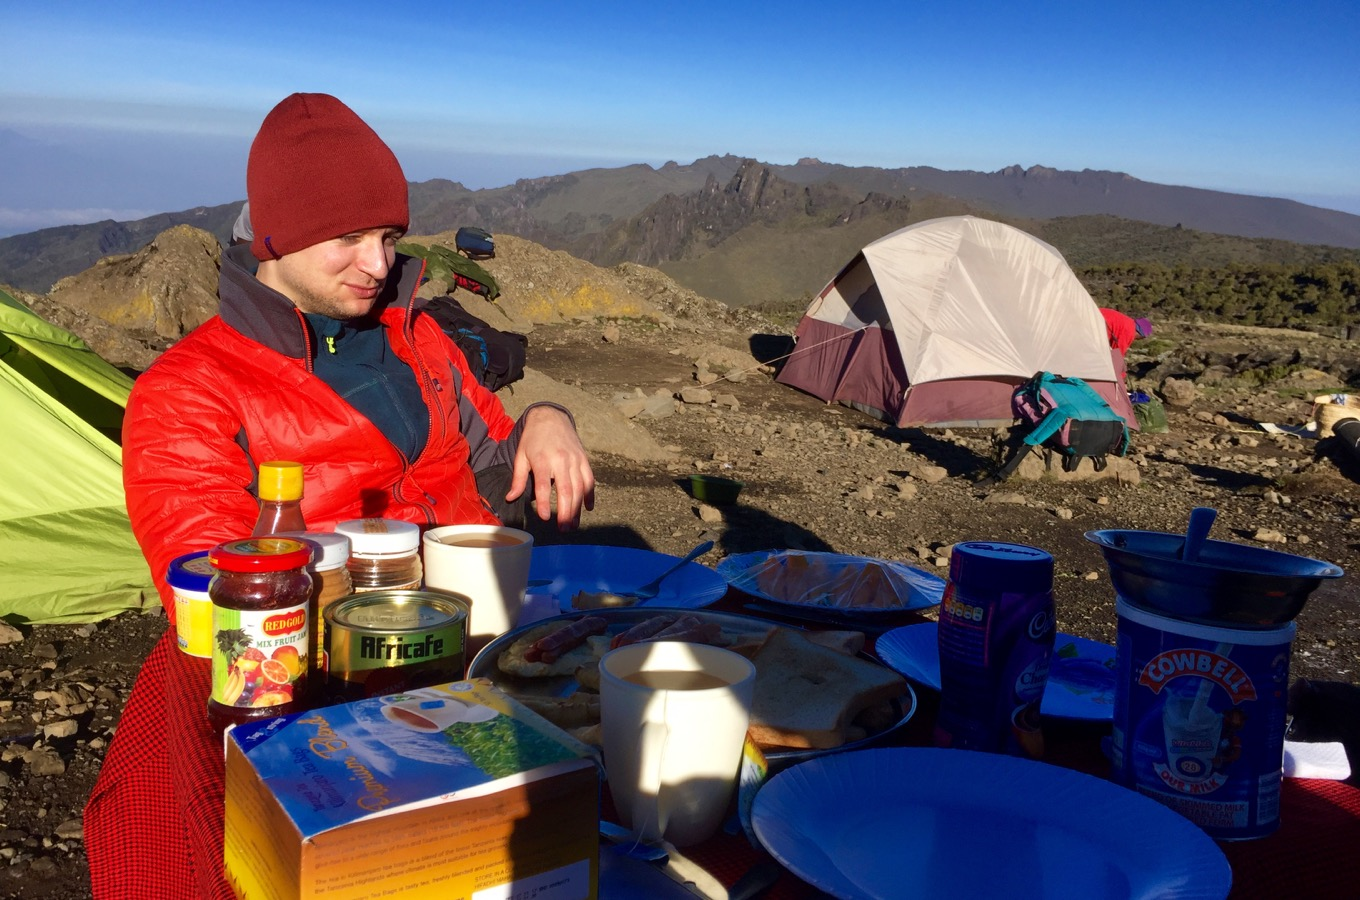 Breakfast at Kilimanjaro in a camp